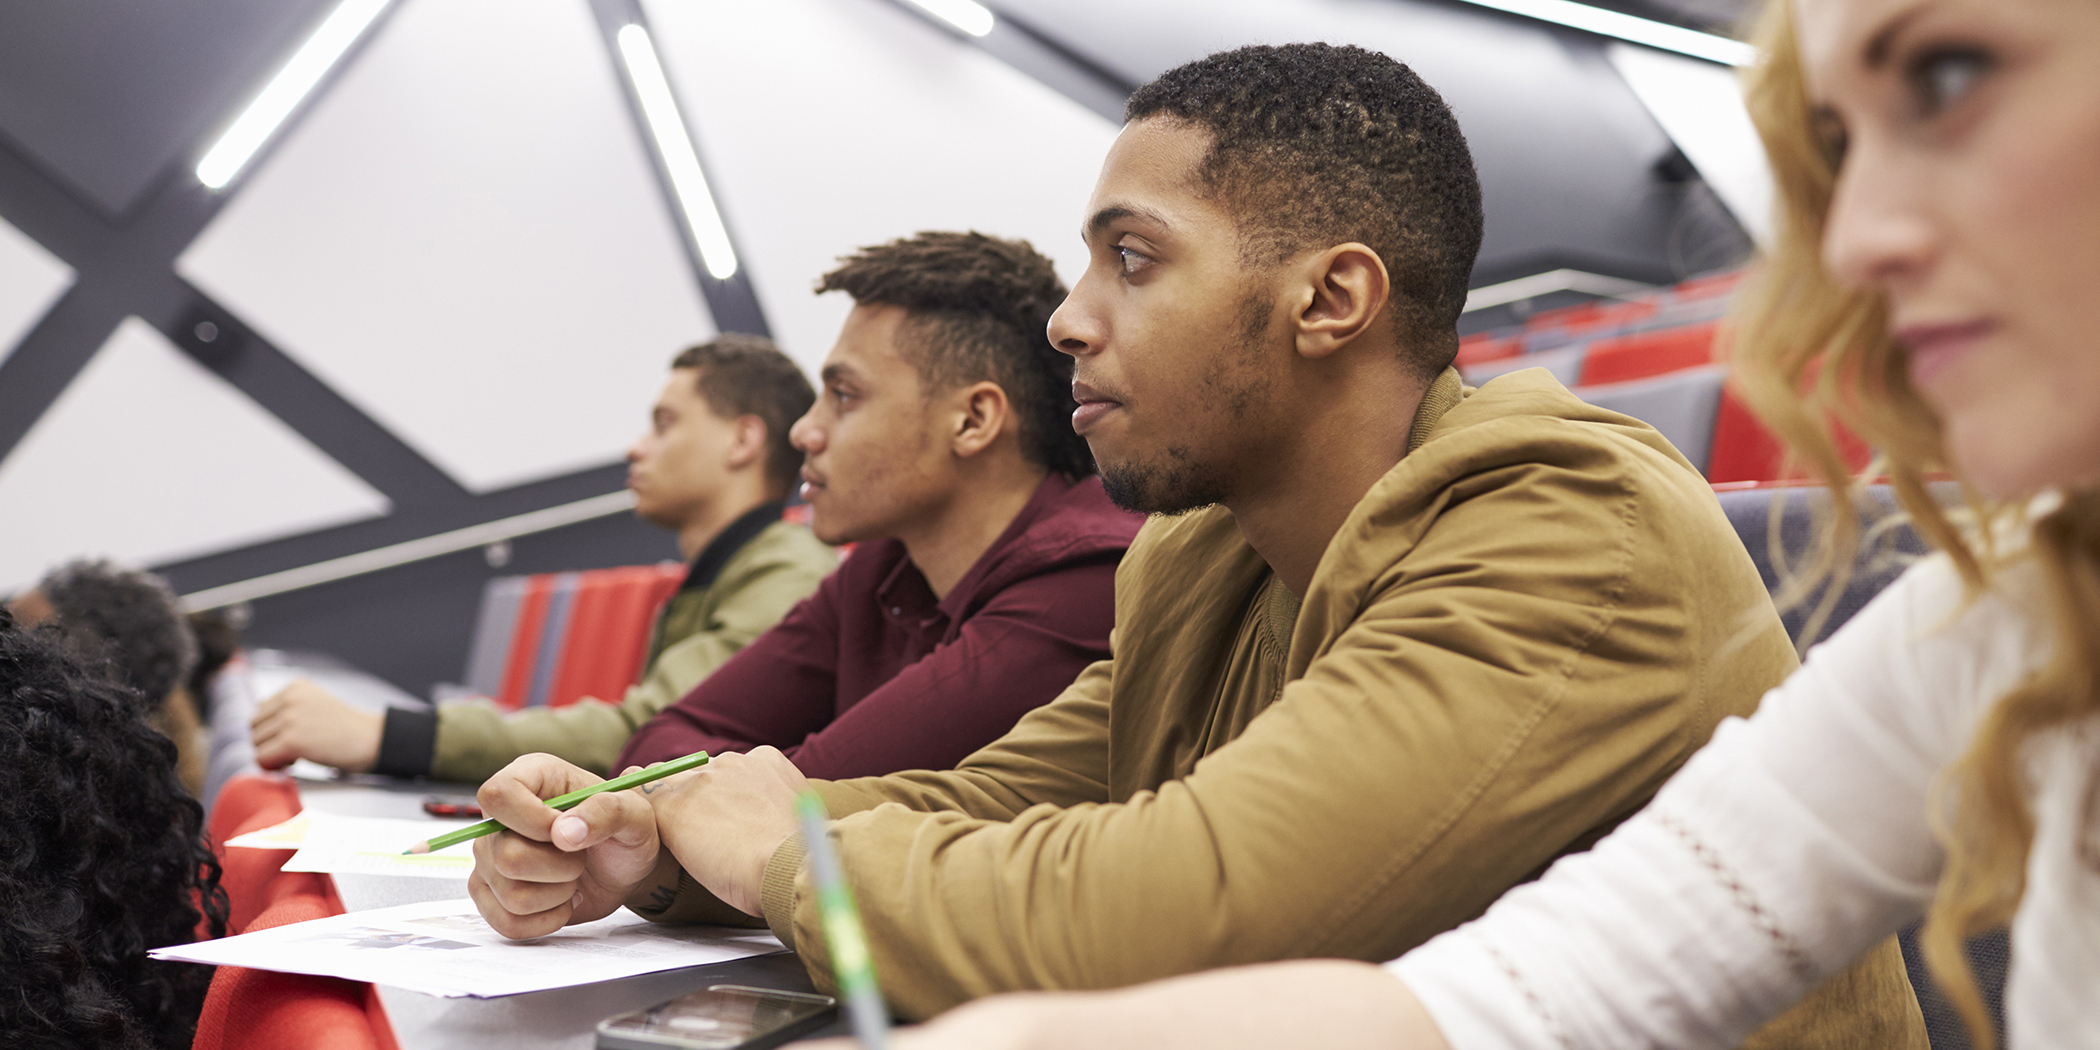 Students in a college lecture hall